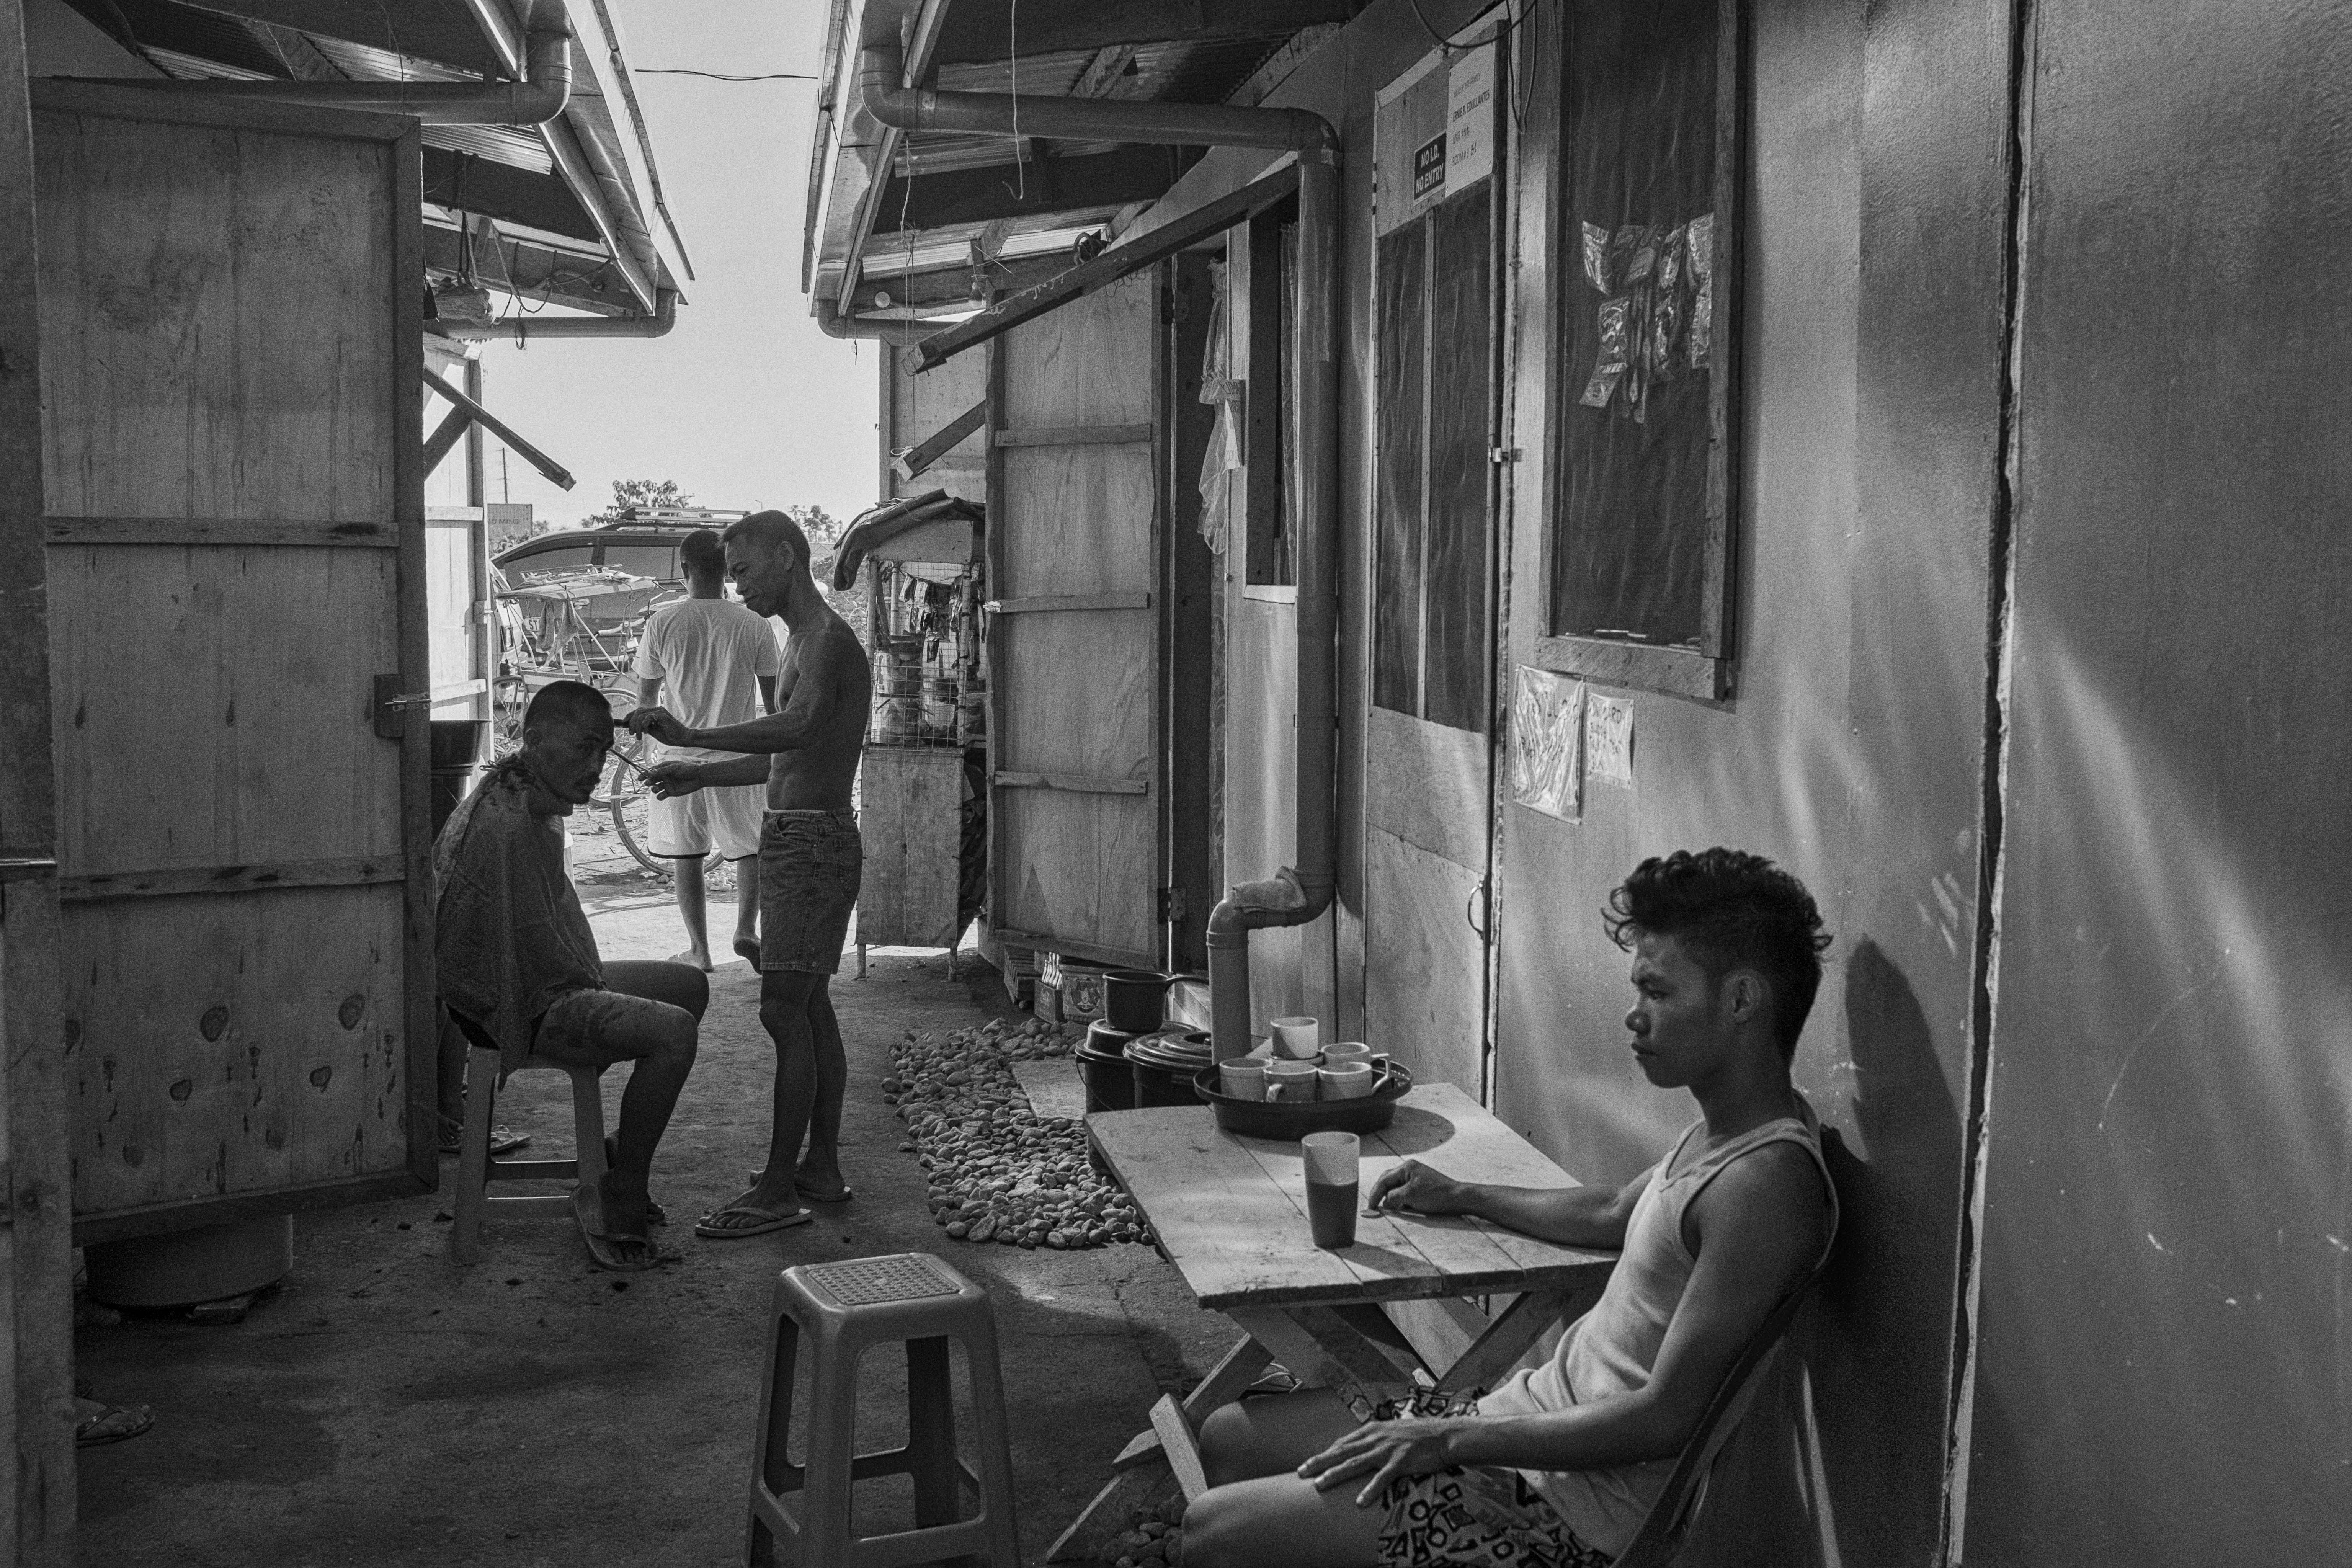 Residents go about their morning routines at a temporary bunkhouse in Tacloban City on April 26, 2014.